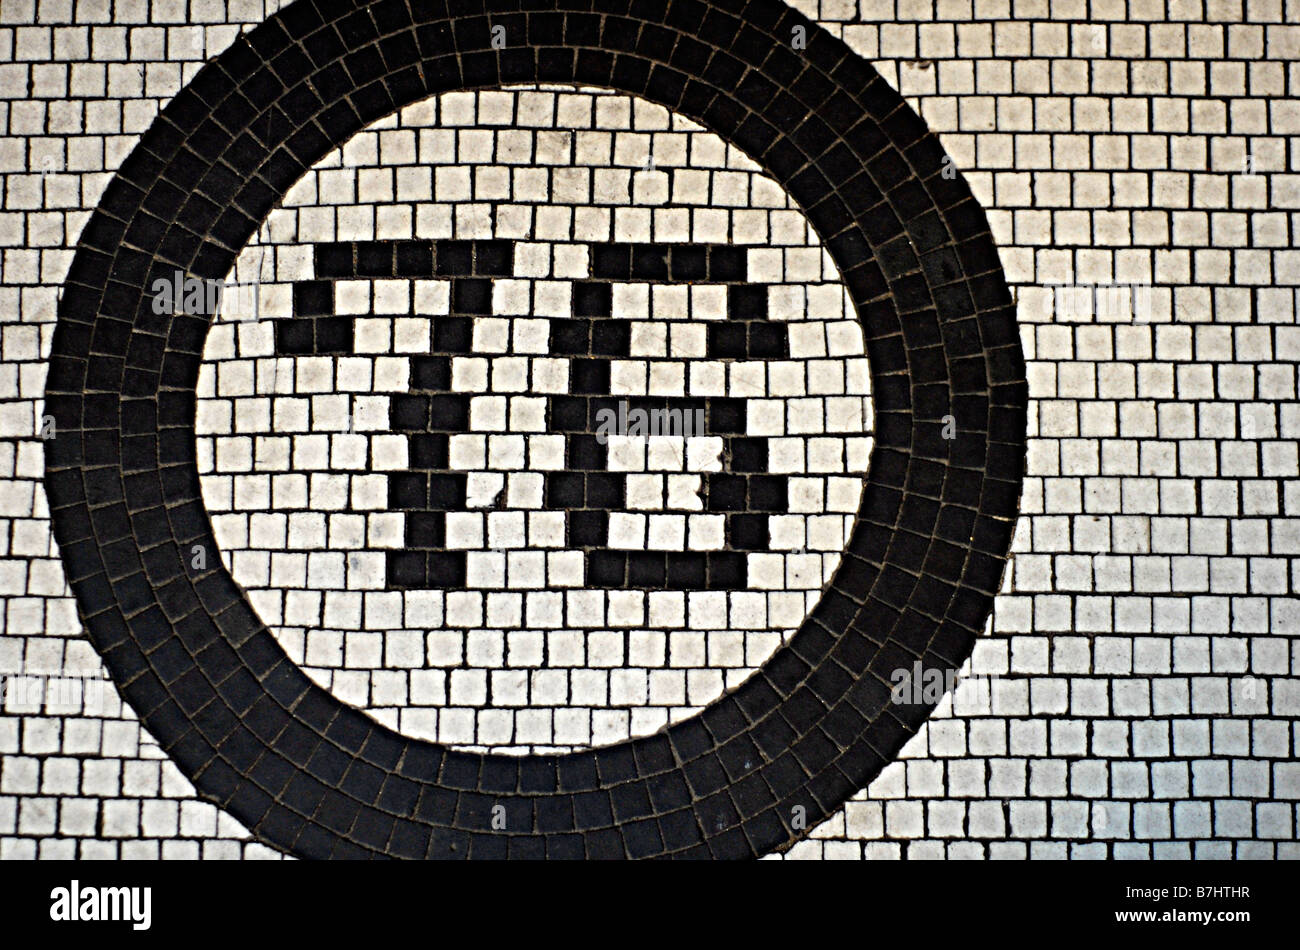 The number 76 made out of little tiles - Stock Image